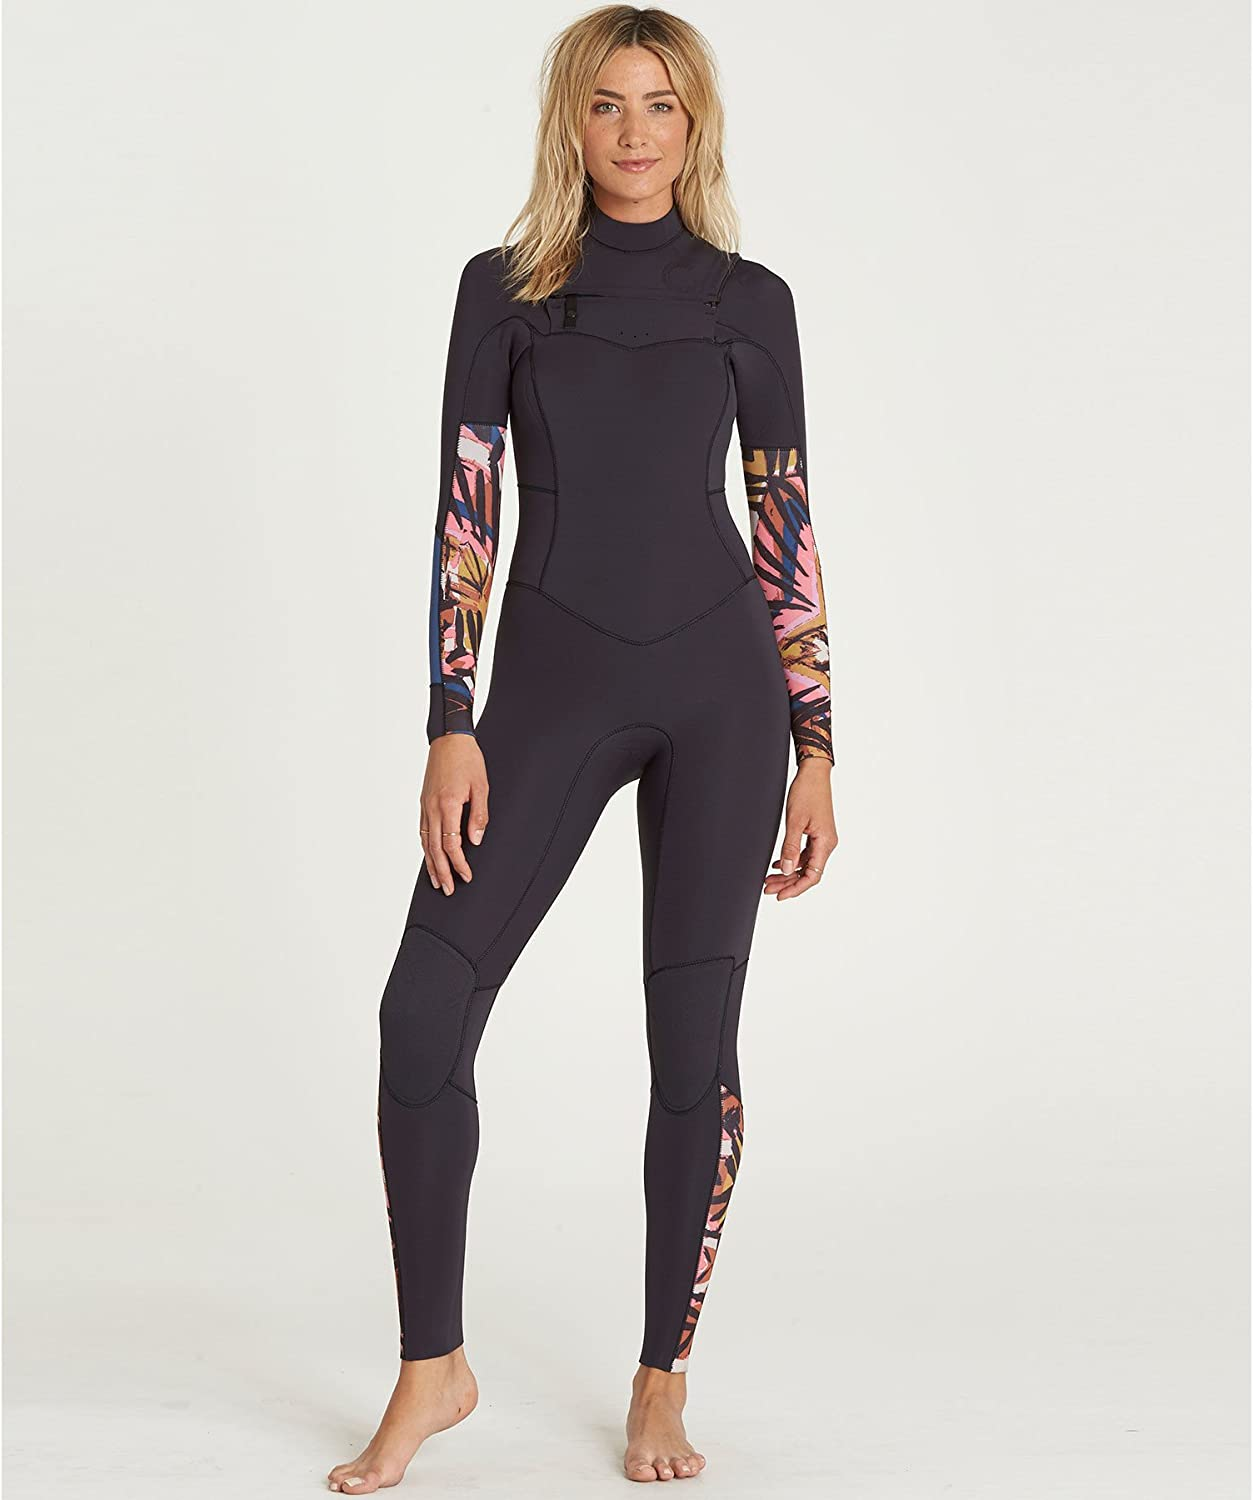 BILLABONG Womens Salty Daze 5 4MM Winter Cold Water Winter Cold Weather Chest Zip Wetsuit Tribal  Easy Stretch Thermal Lining